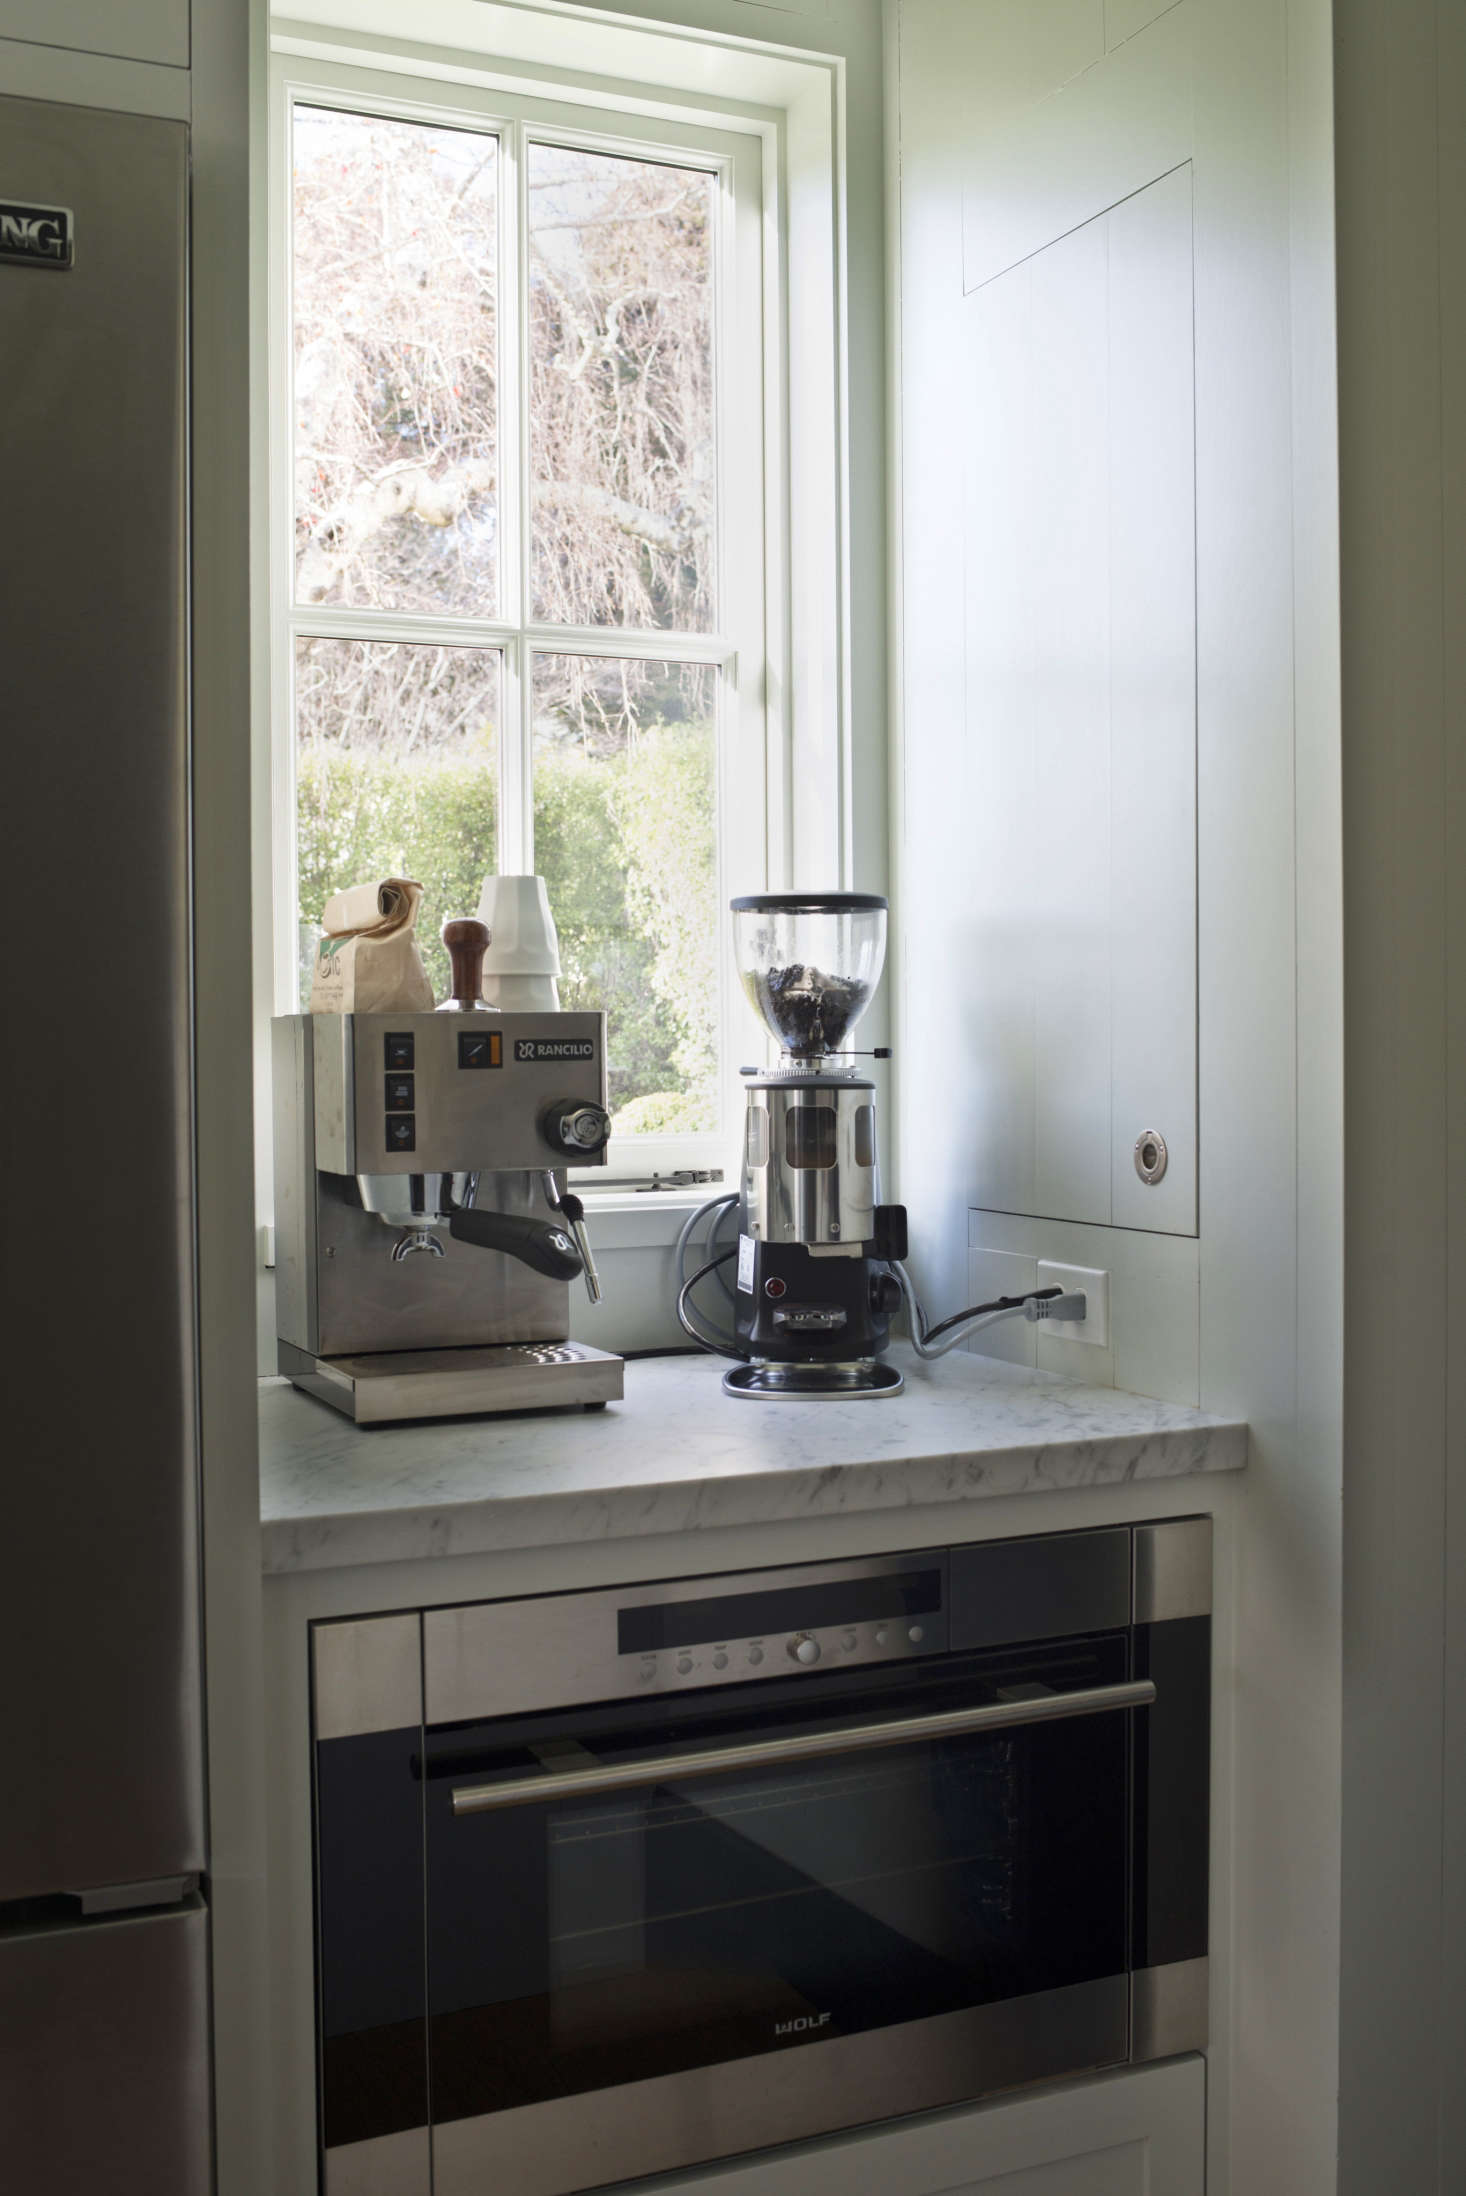 A Rancilio Silvia Espresso Machine Stocks The Coffee Nook Next To The  Refrigerator. The Broom